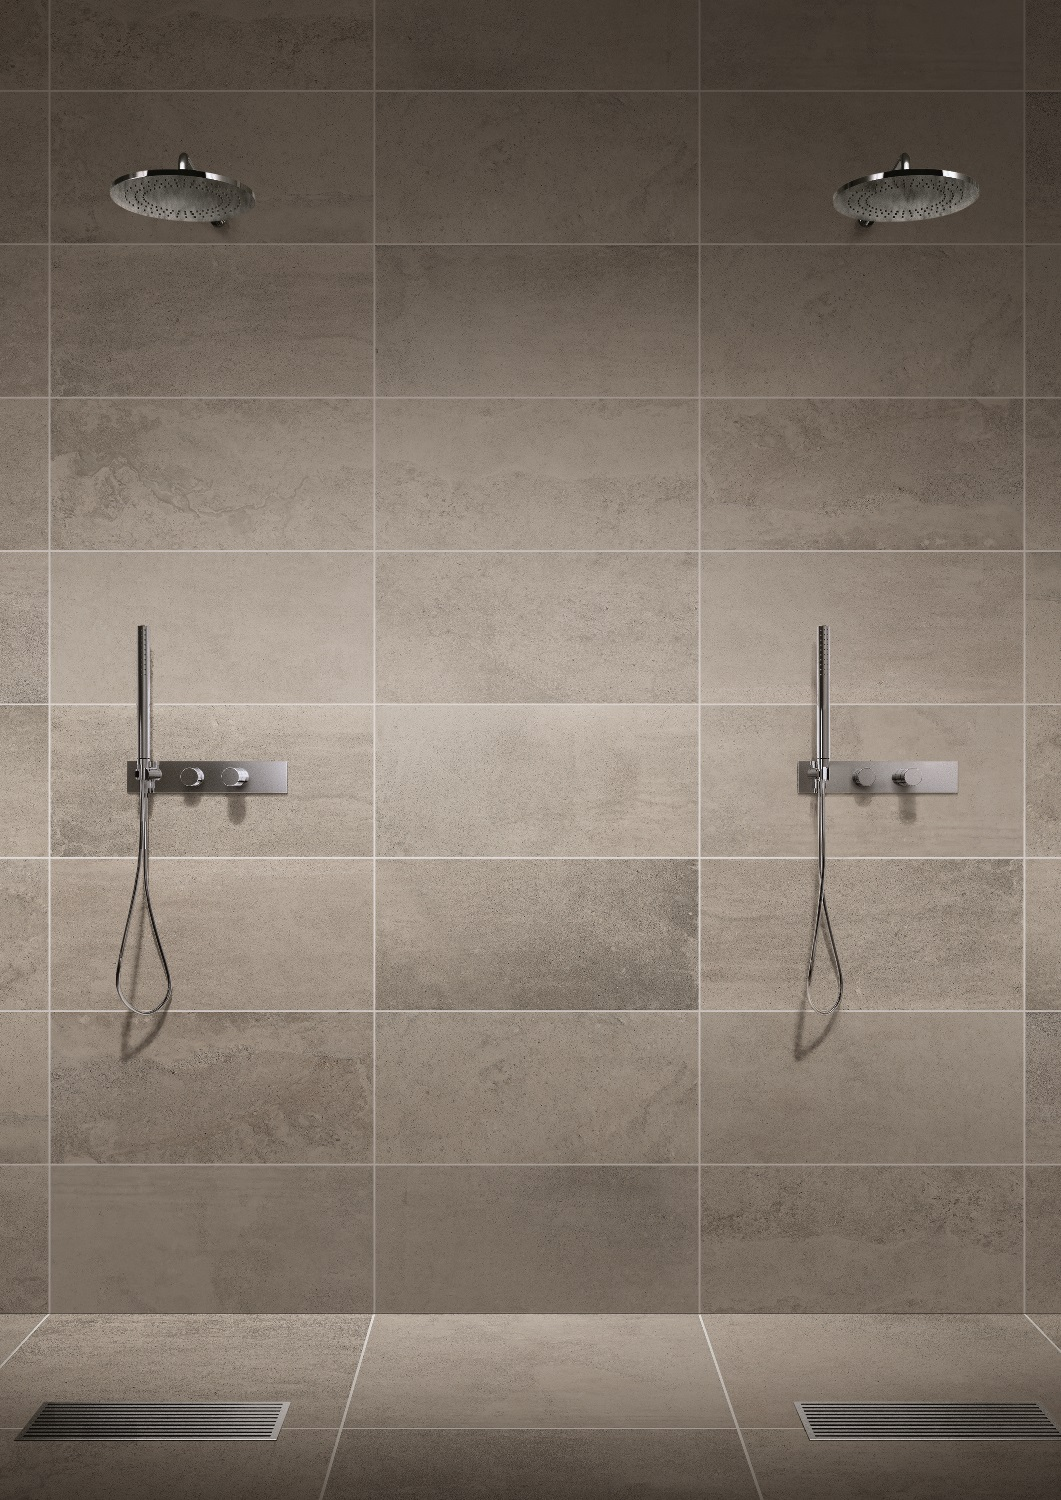 Use Glazed Porcelain Tiles To Tile The Walls In Showers And Around Bathtubs